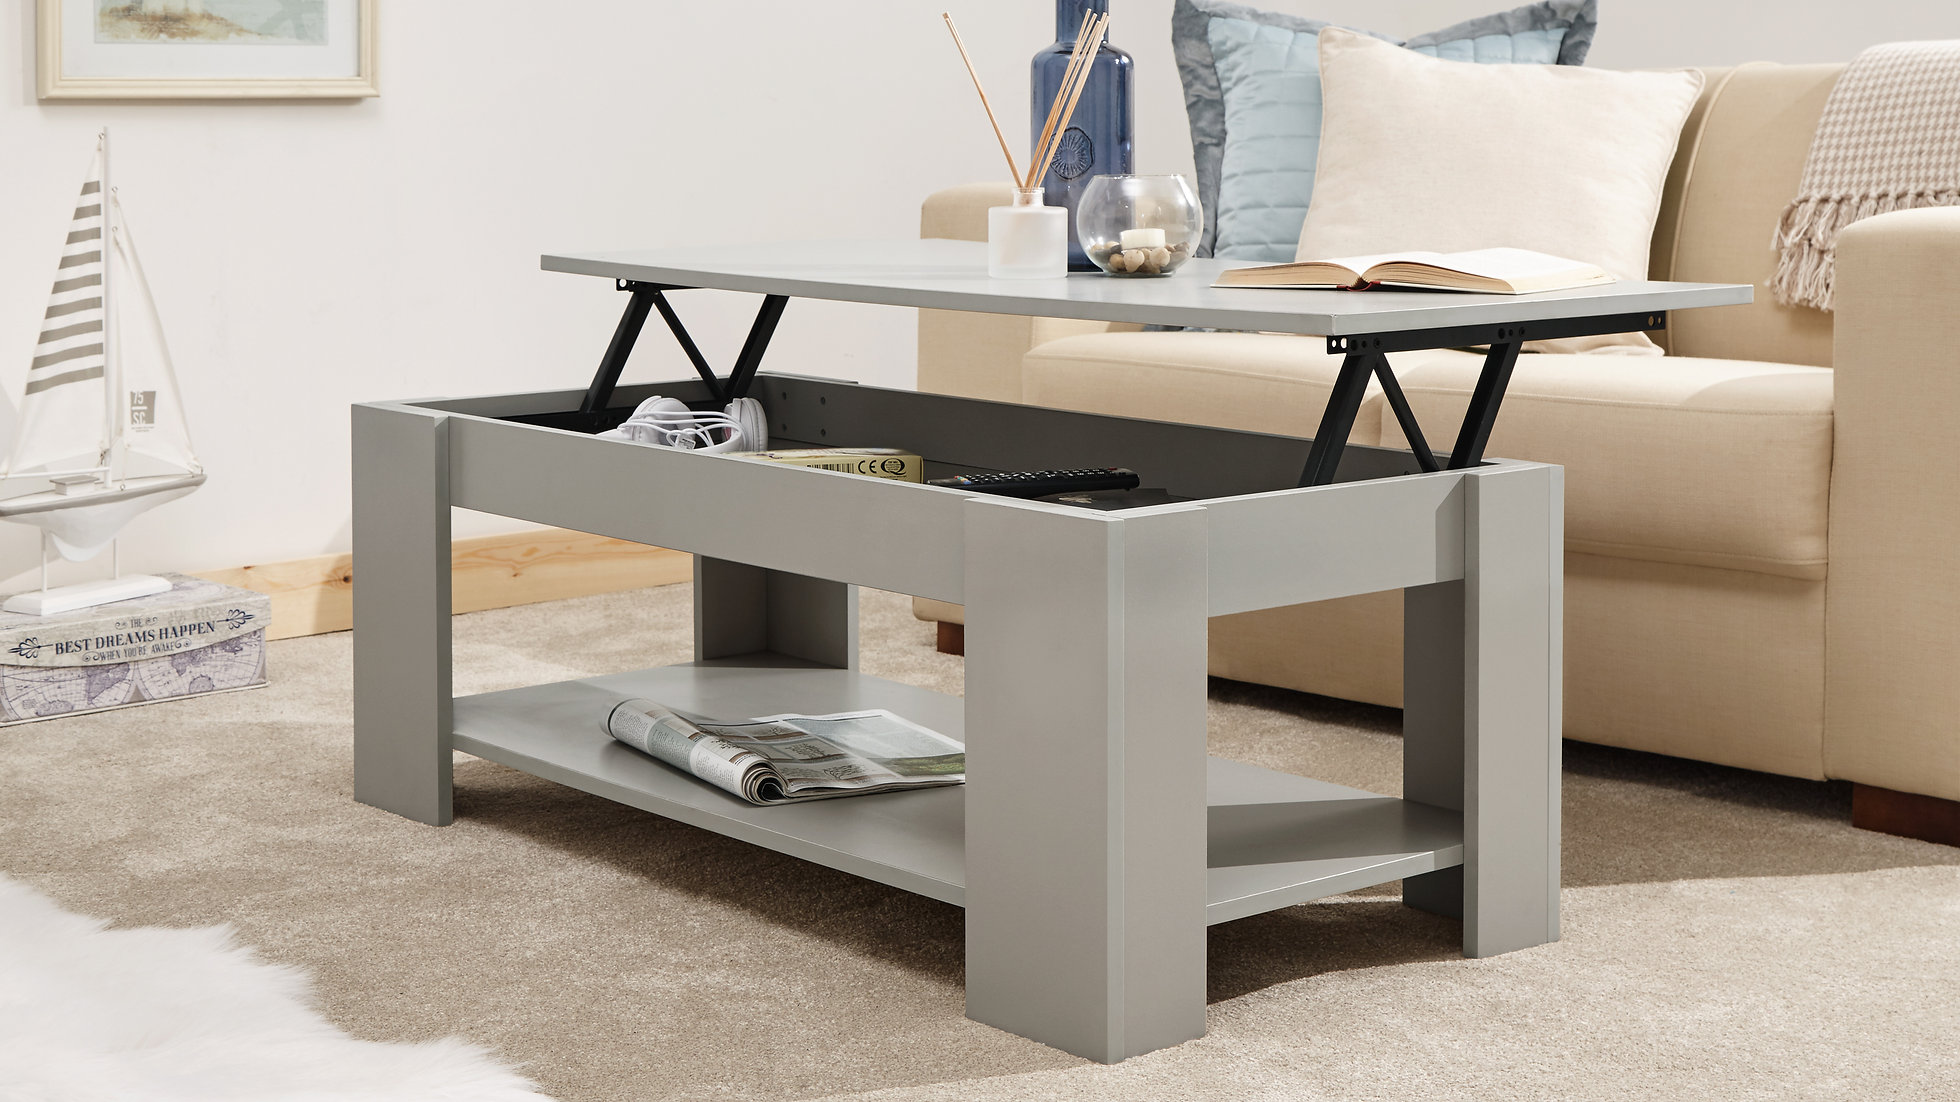 Lift Up Coffee Table With Storage 11